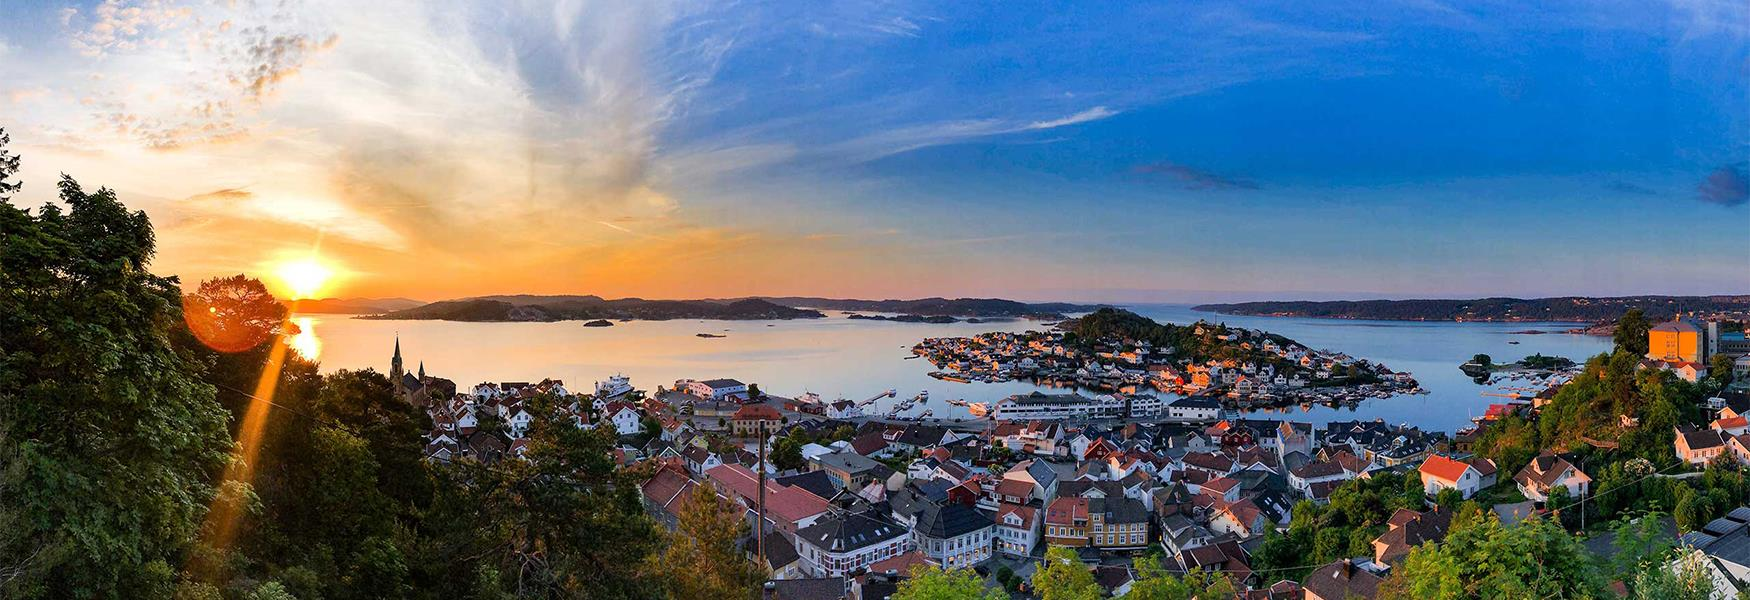 Viewpoints in Kragerø